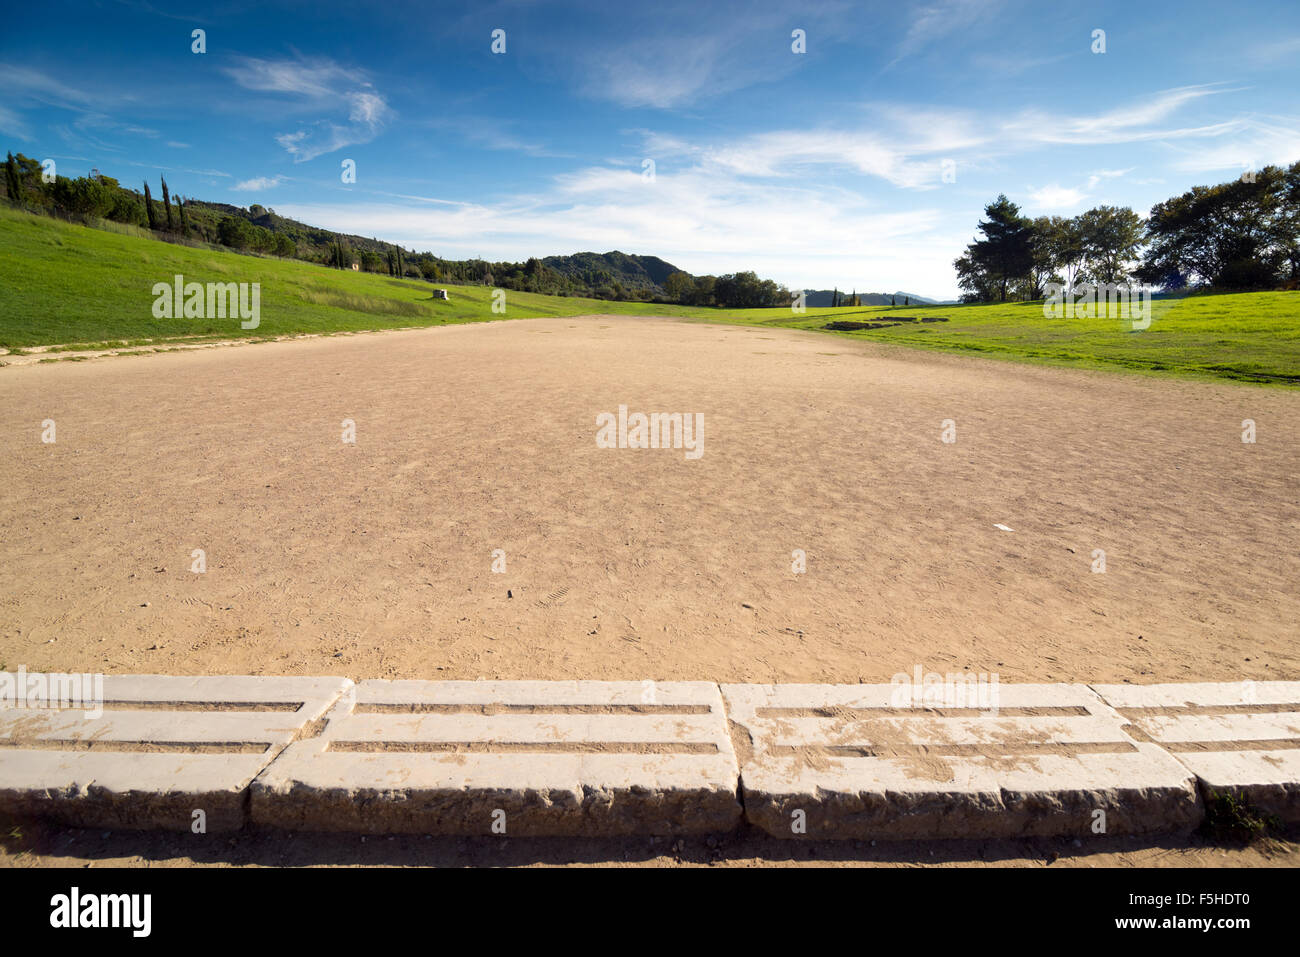 Ancient classic greek olympic stadium at Olympia in Greece - Stock Image